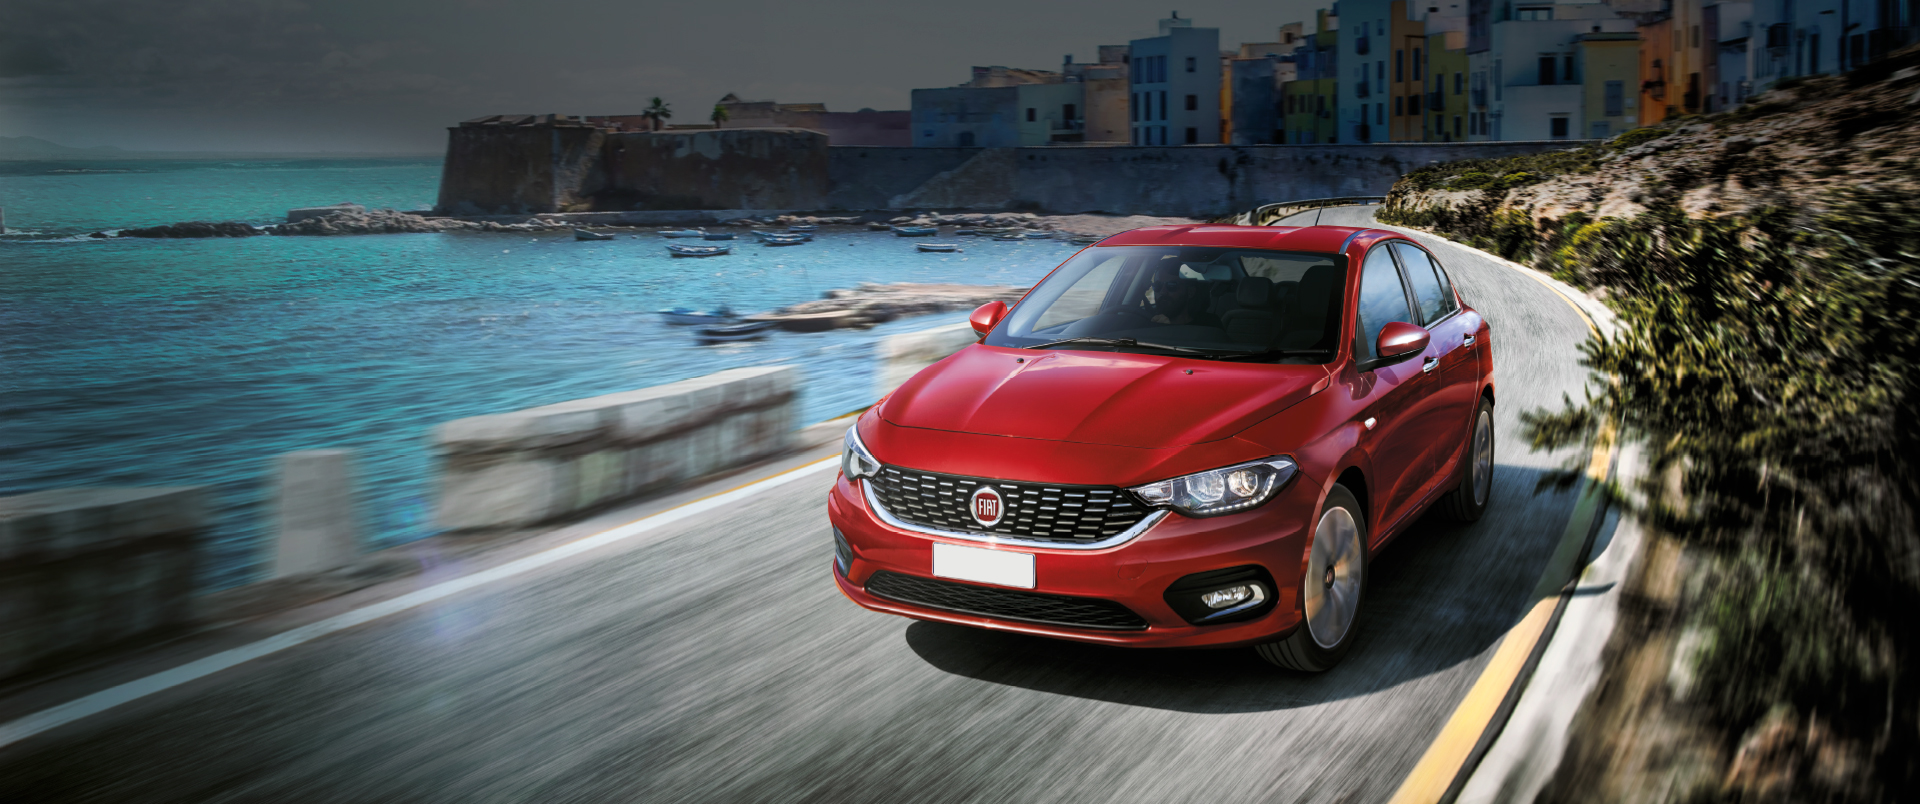 fiat-tipo-safety